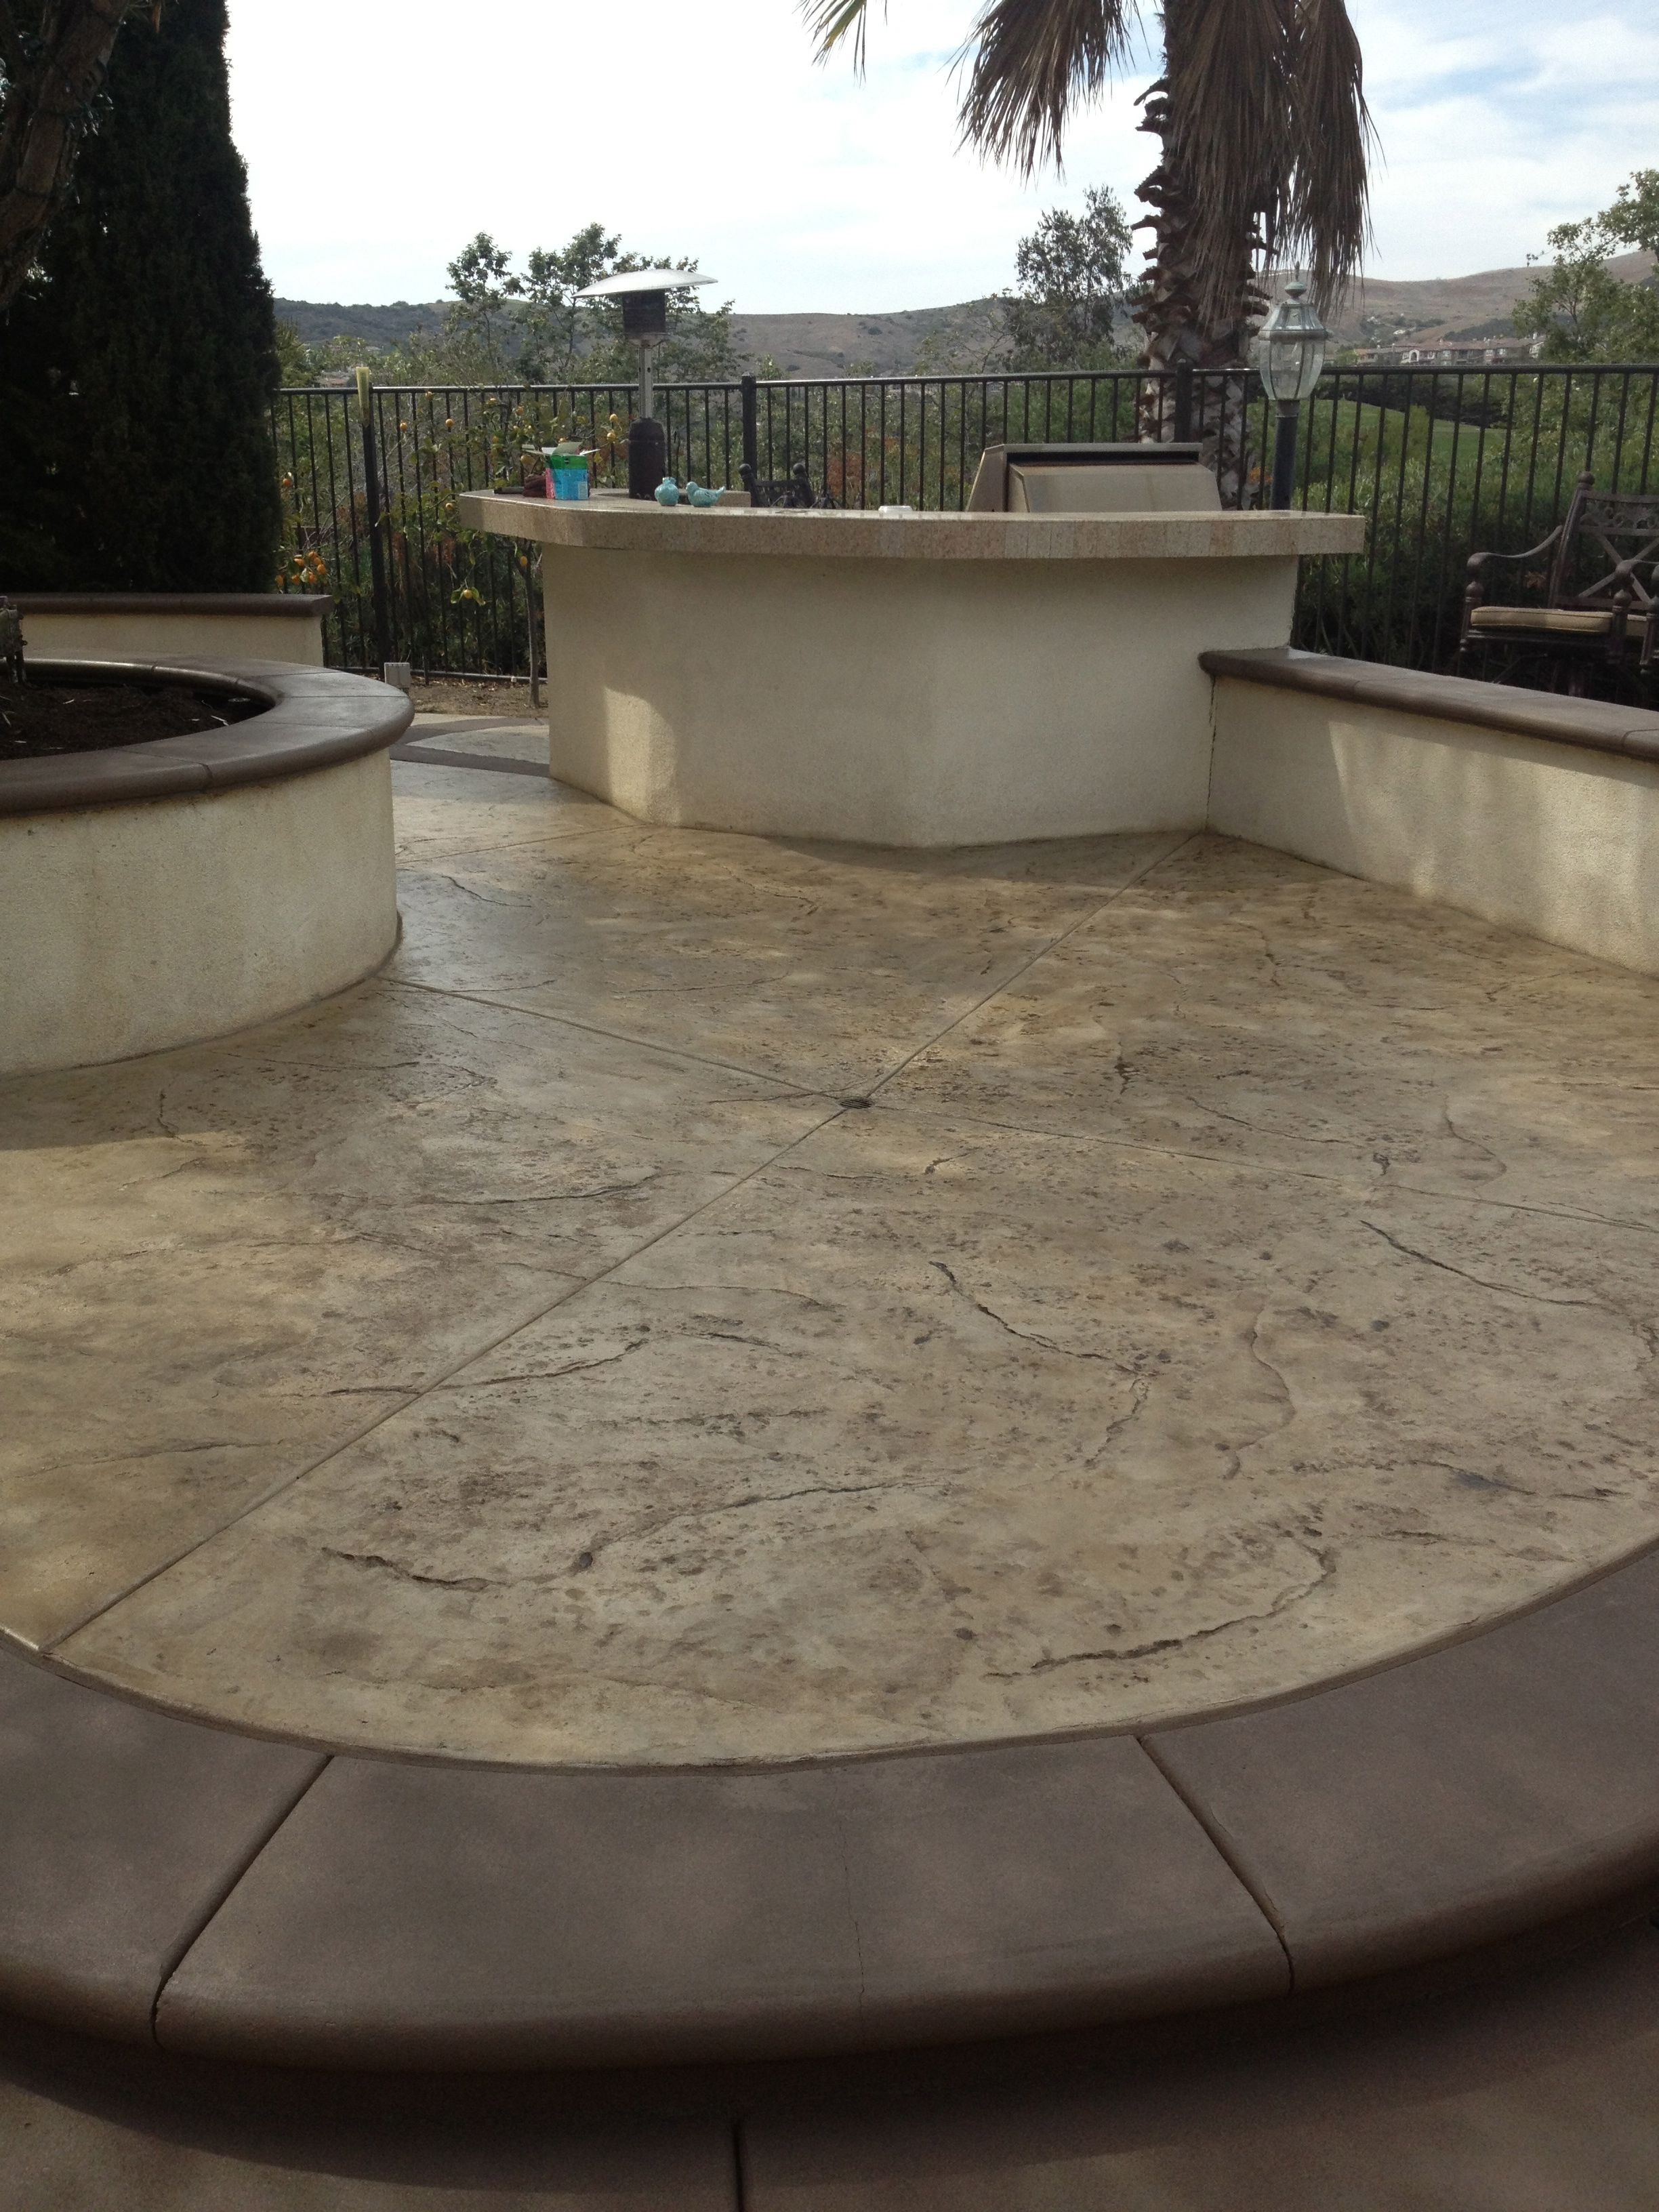 Superior Concrete Color Restoration On A Patterned Or Stamped Concrete In San  Clemente Ca. Work Done